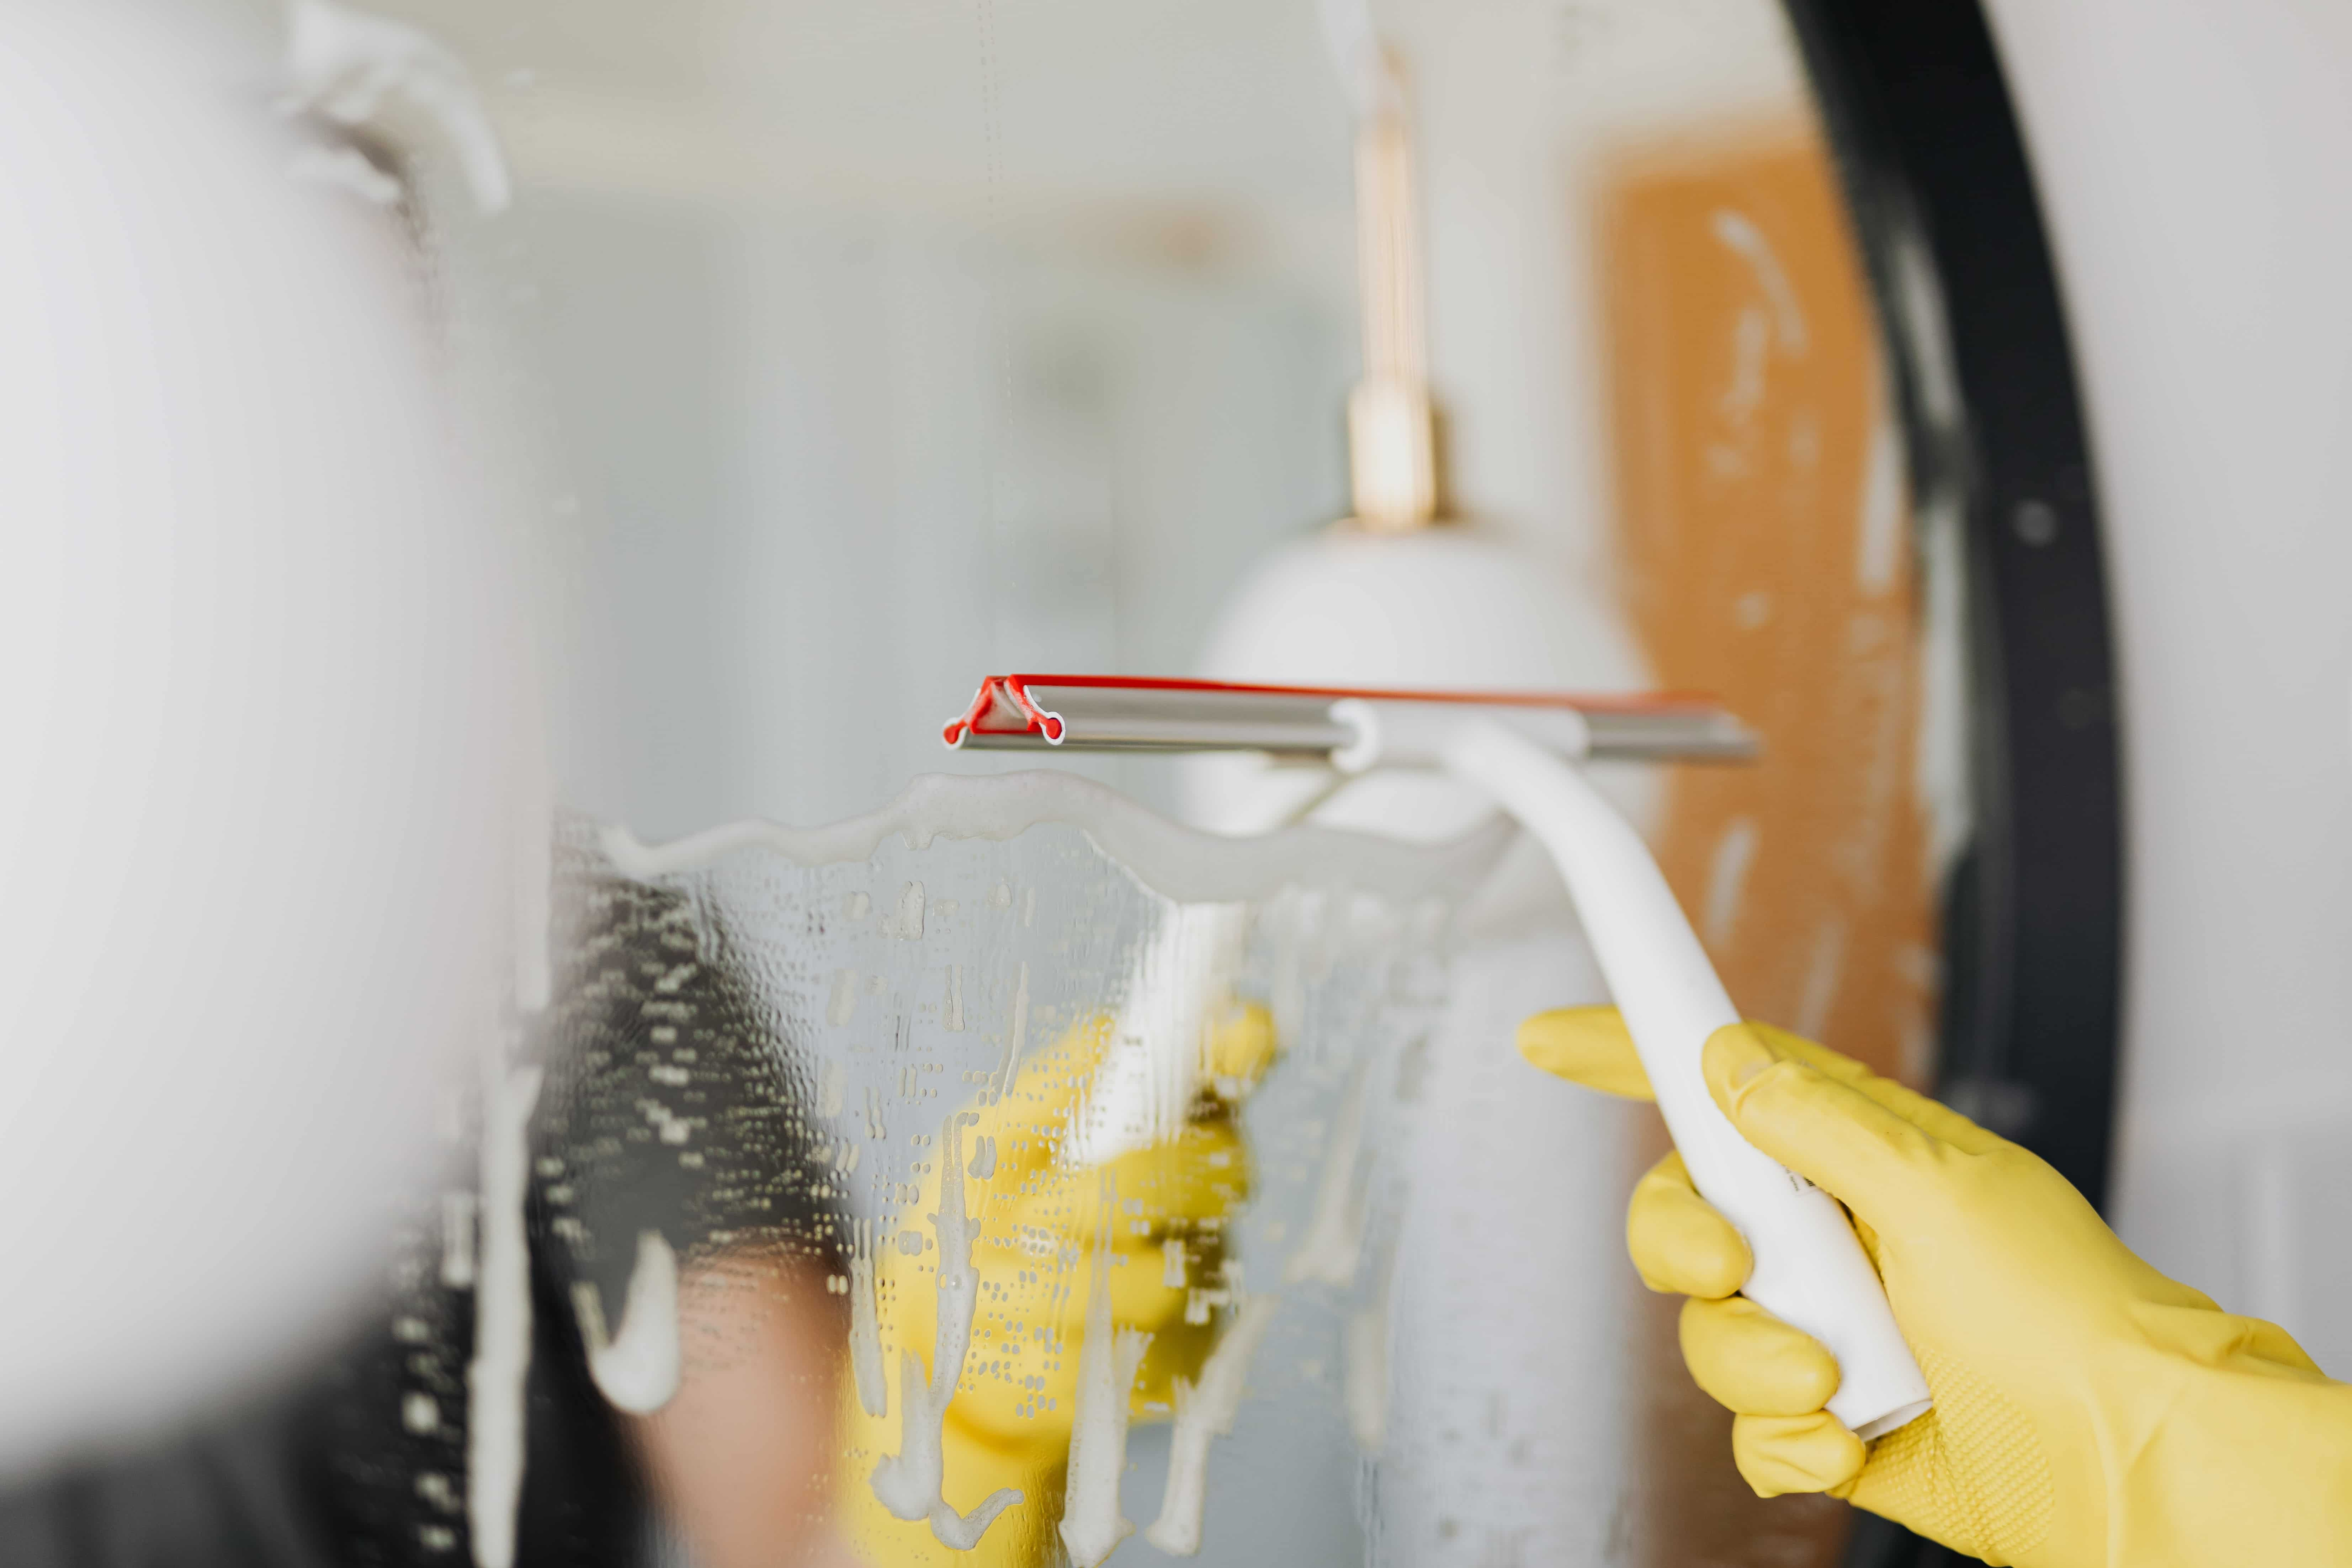 Steps to Cleaning Your Home Window Tinting Properly - Our Guide